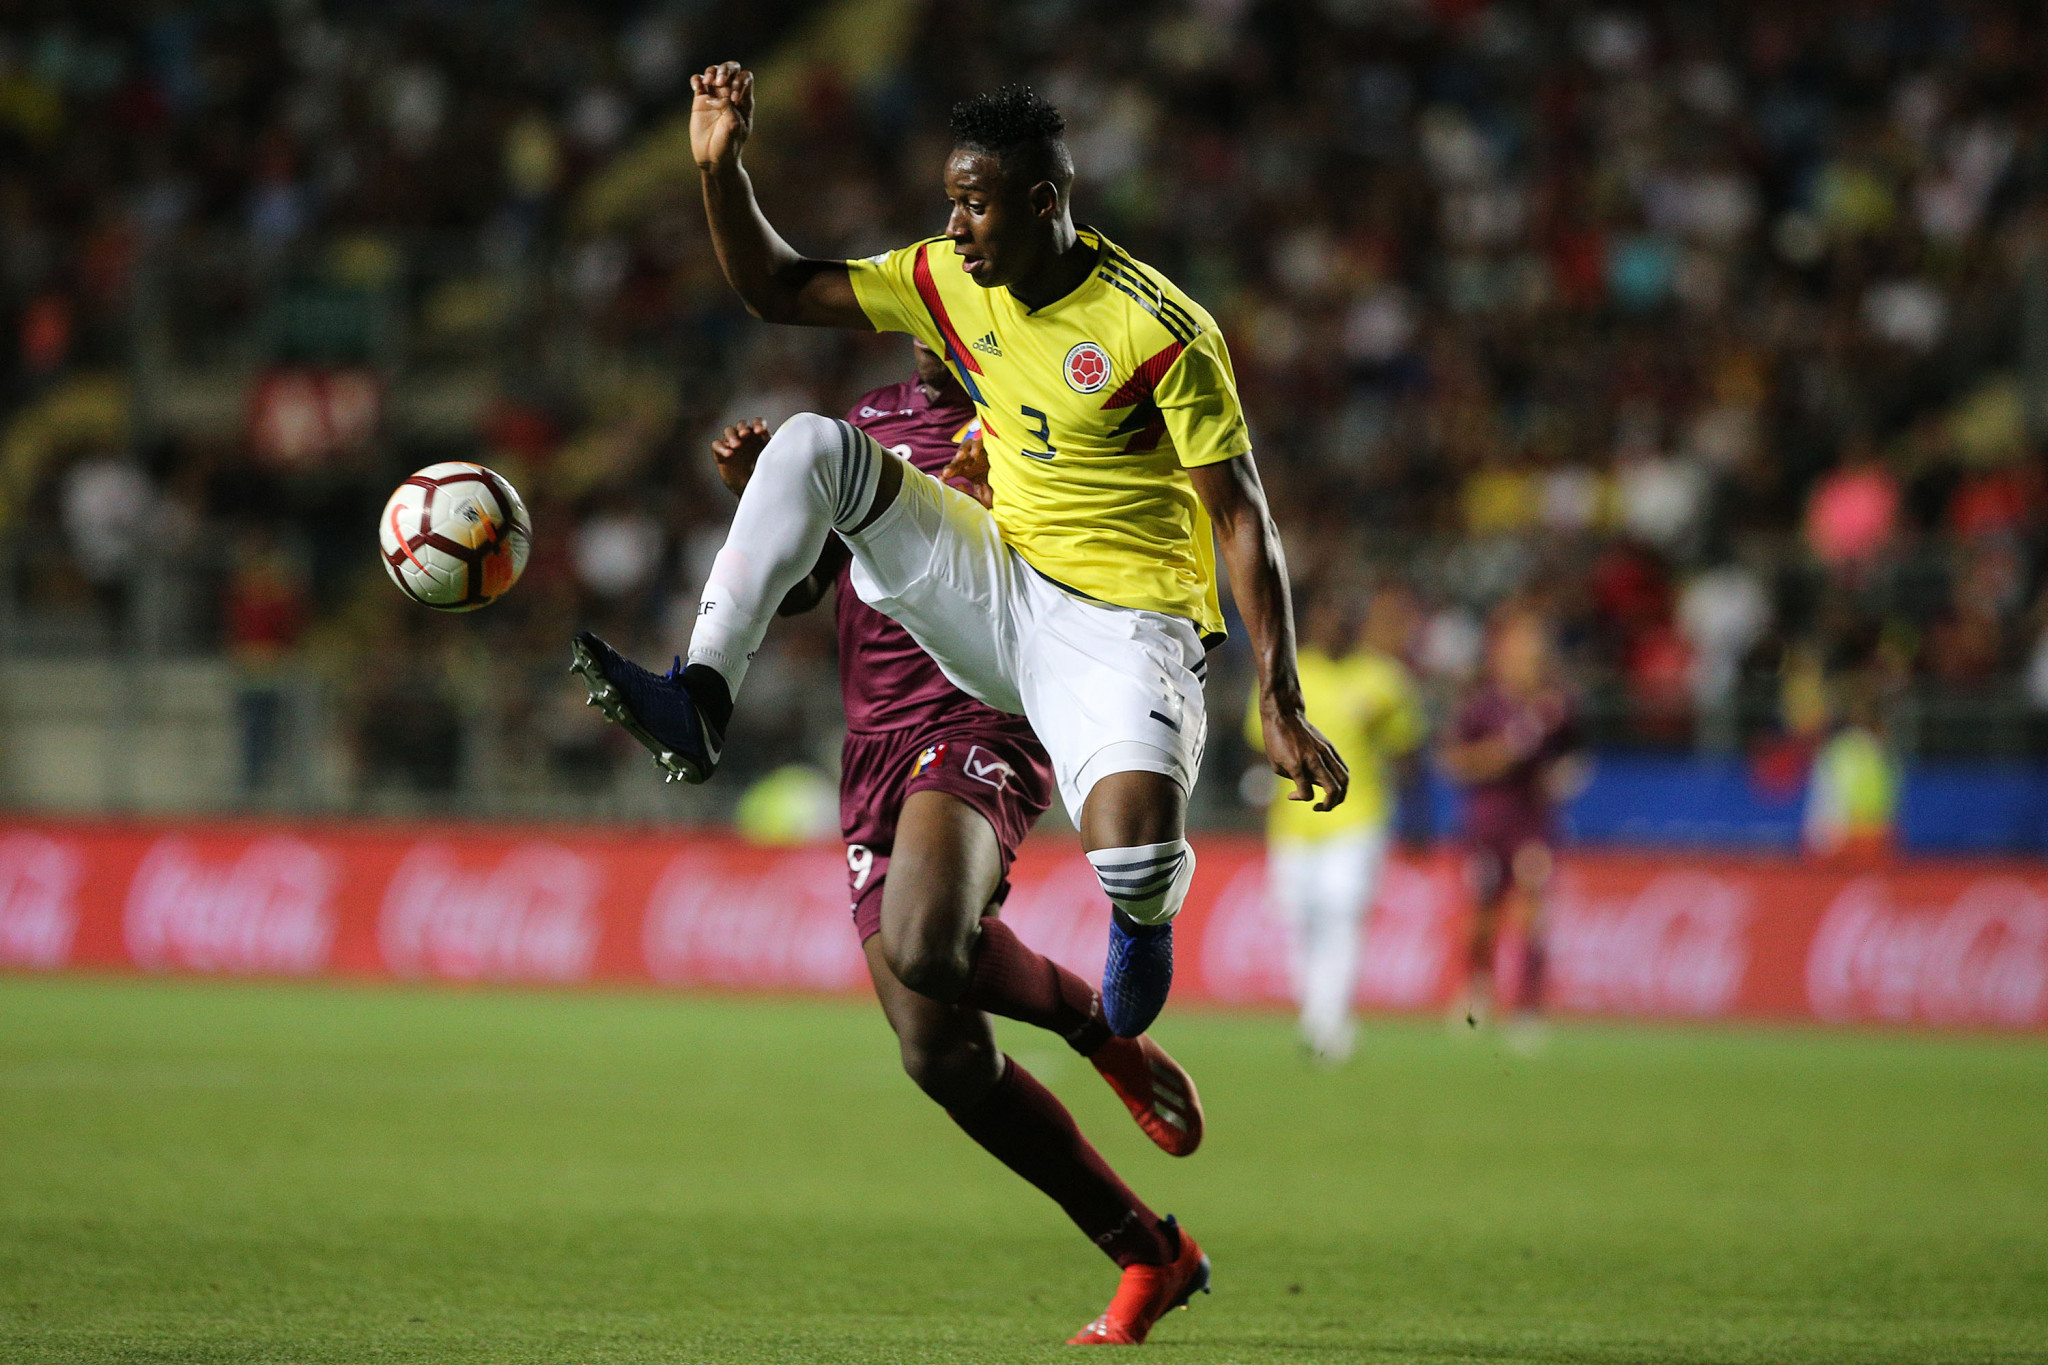 Andres Reyes scored Colombia's opener against New Zealand ©Getty Images